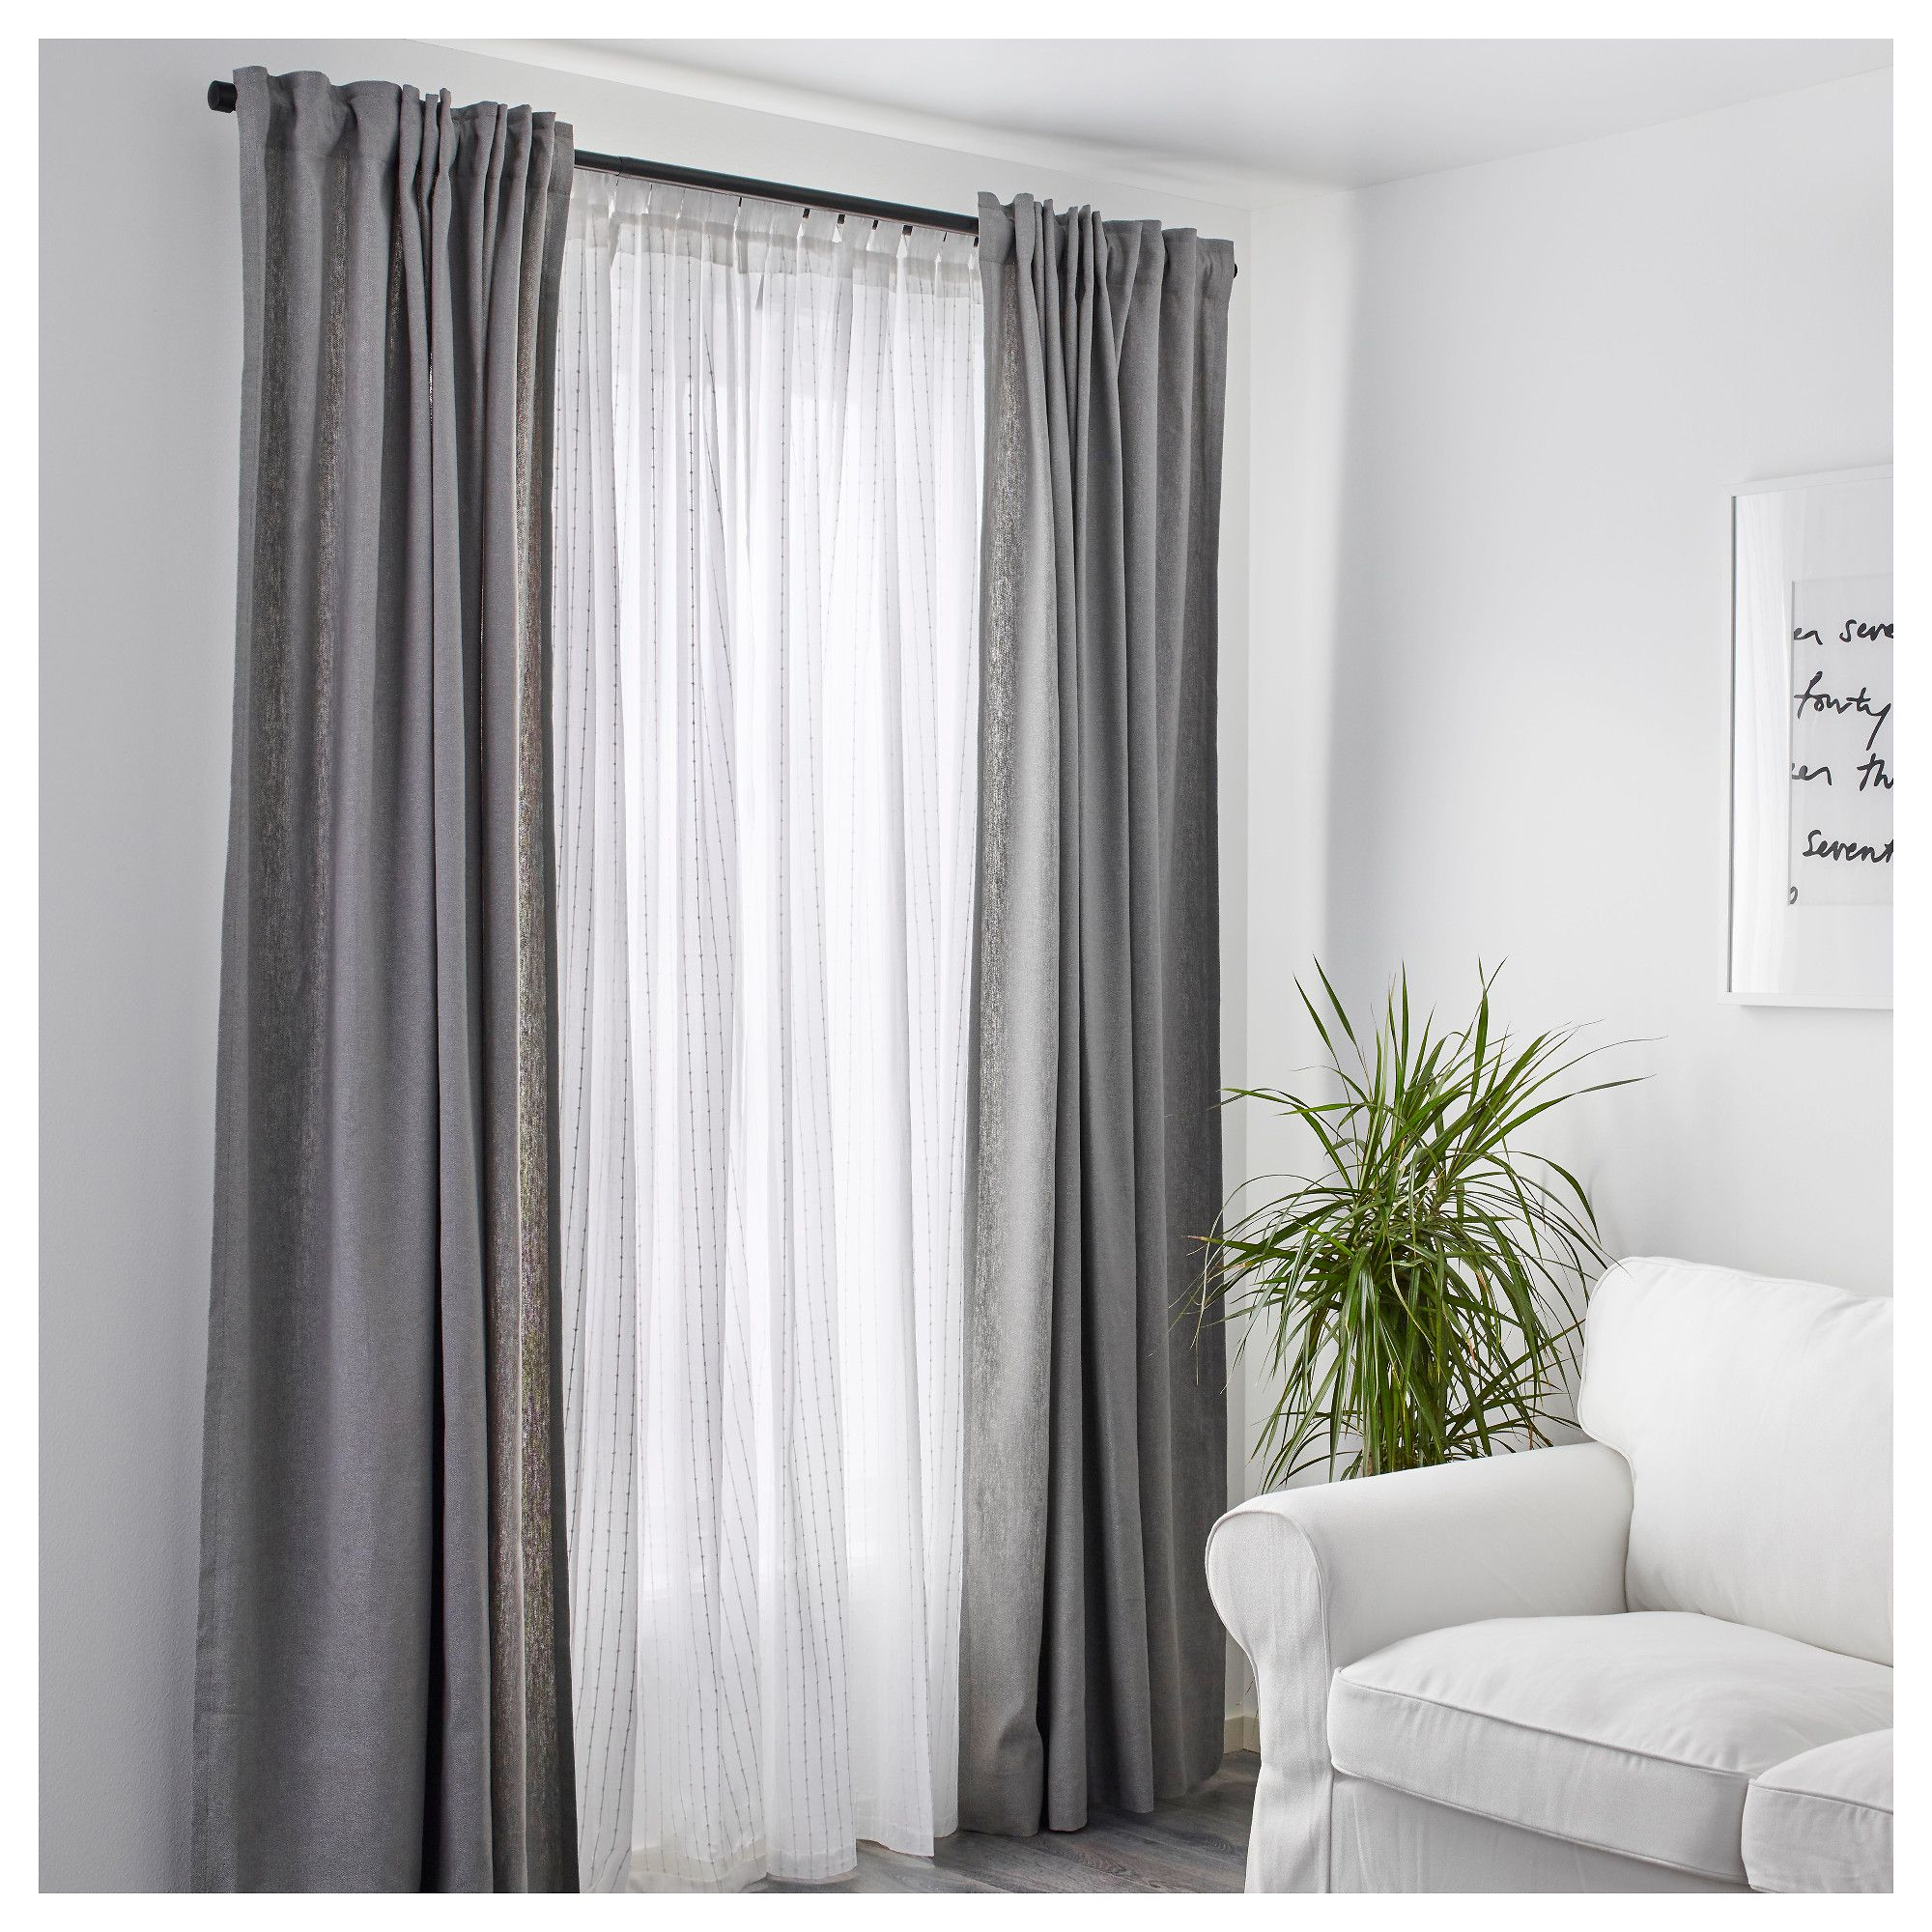 Ikea Gardinen Schlafzimmer Ikea Matilda Sheer Curtains 1 Pair White Products Pinterest